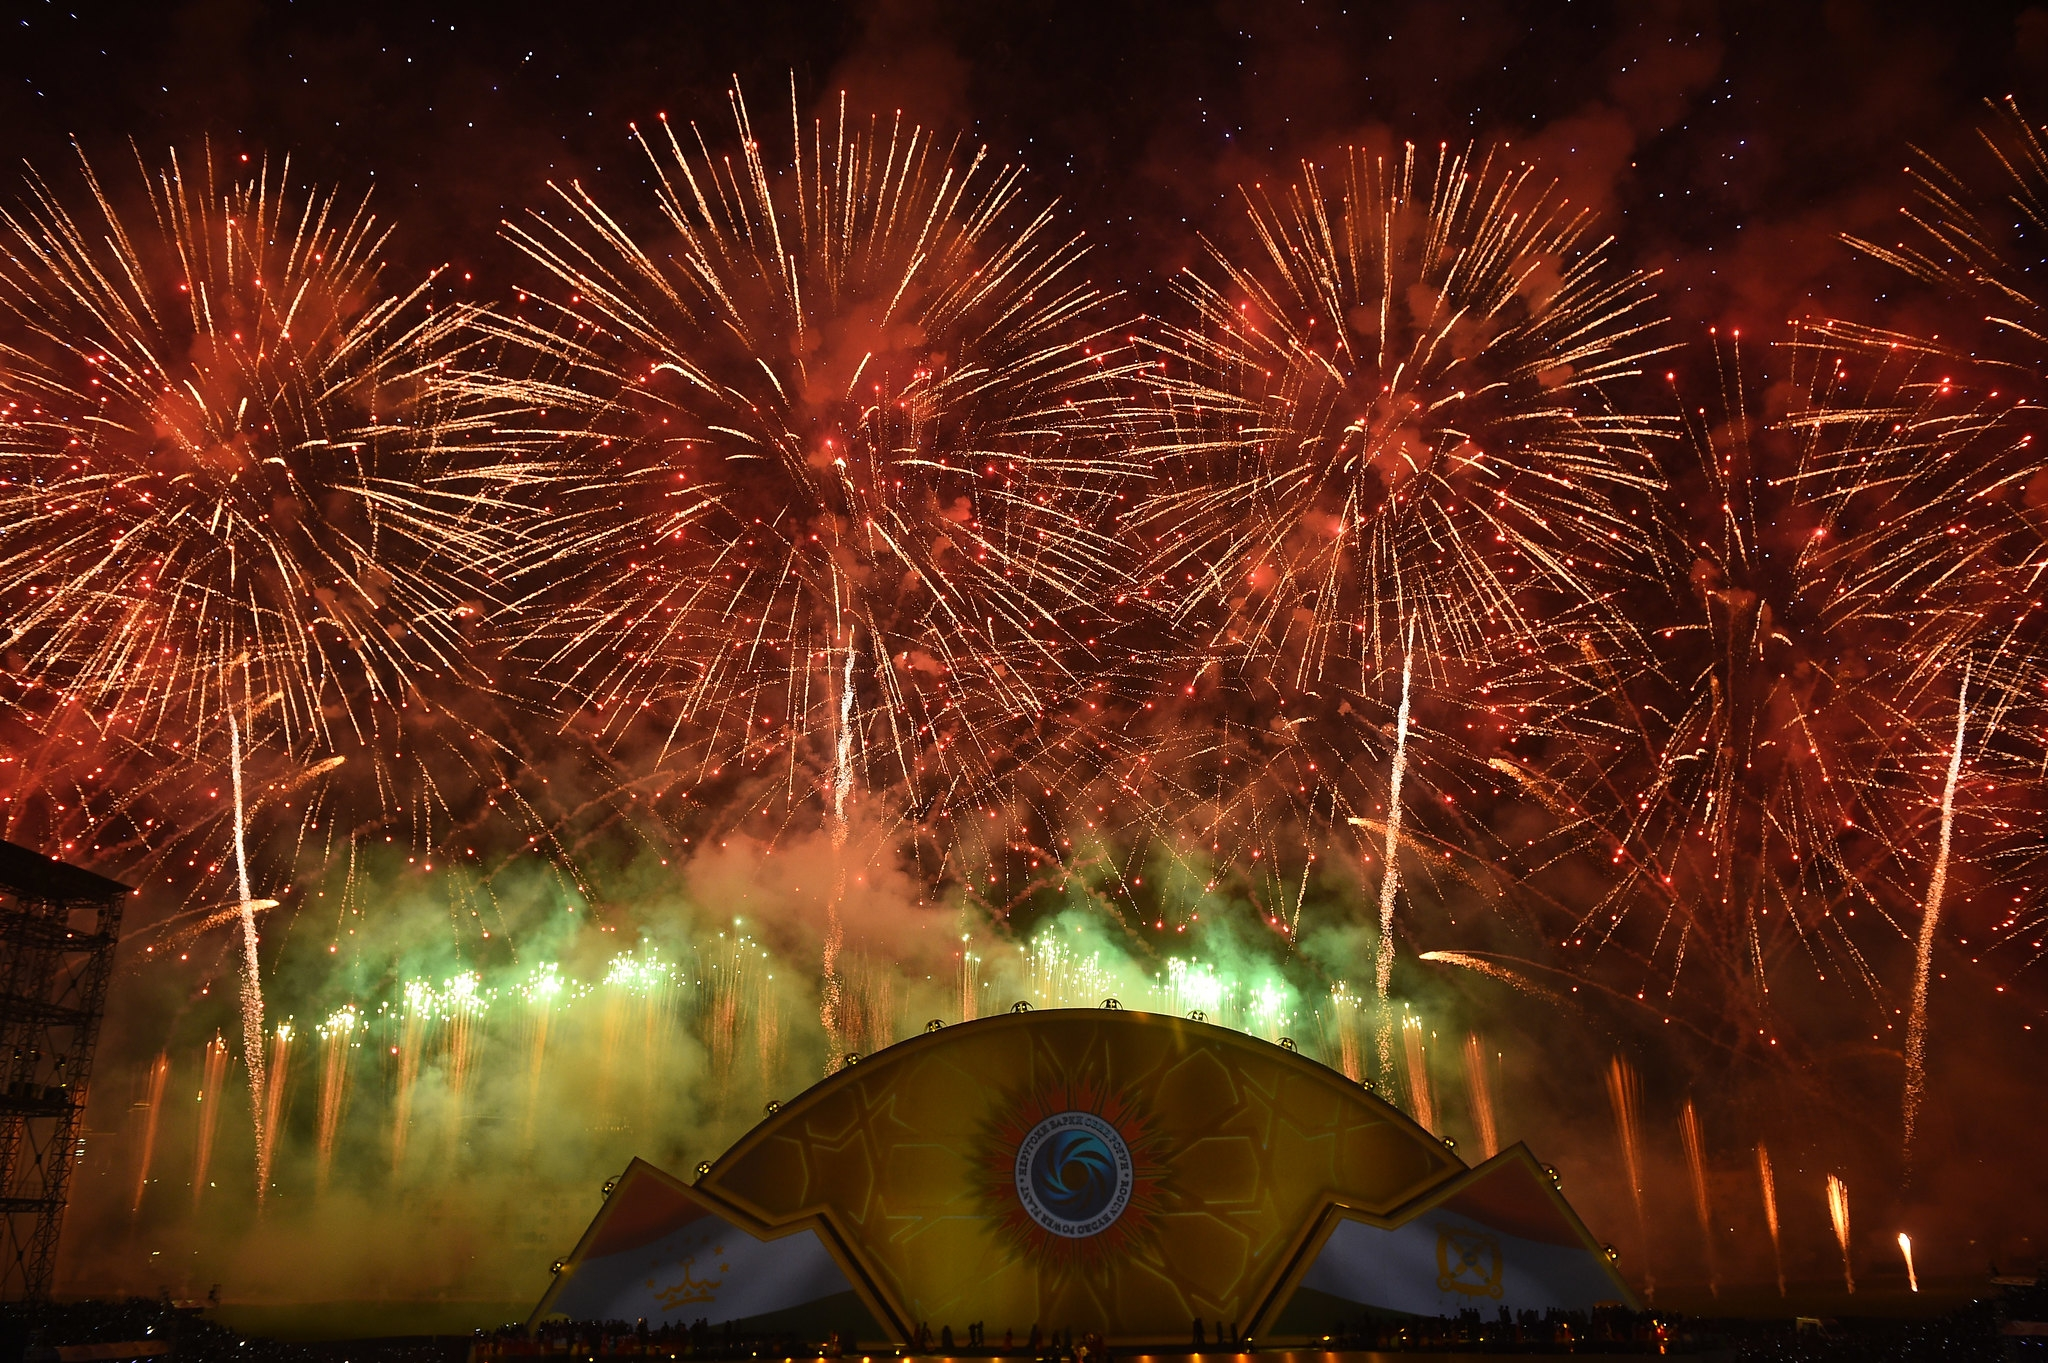 Partying too soon?: Firework display to mark the launch of the first unit of Roghun hydropower plant in November 2018. (Photo: Tajikistan presidential administration)